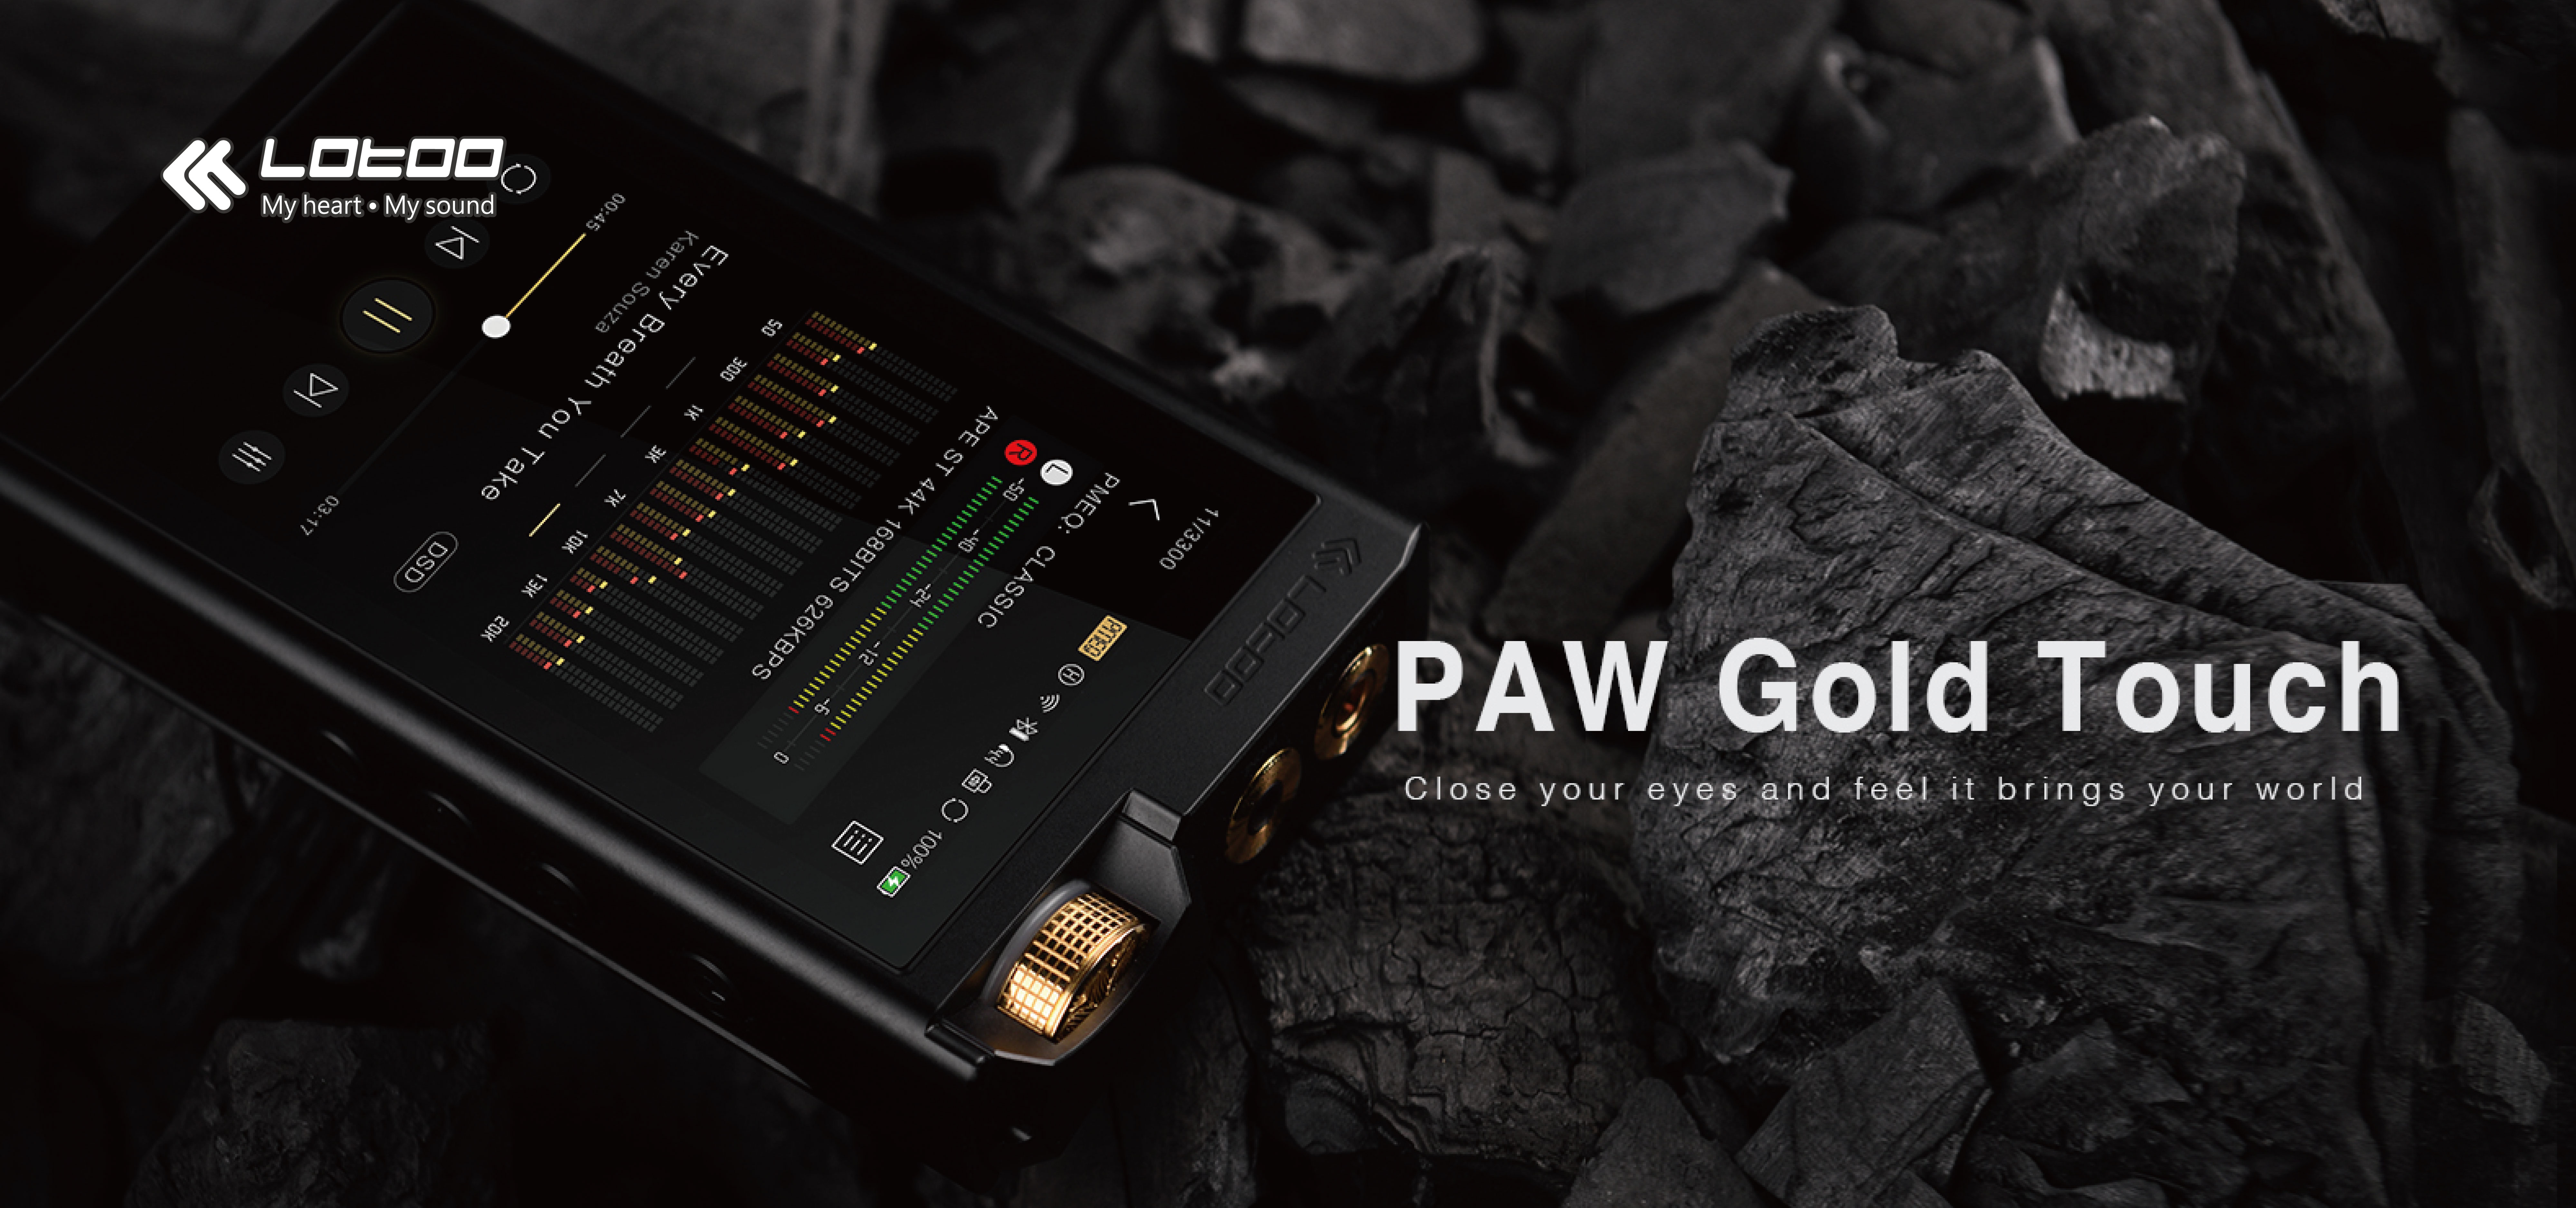 #lotoo #pawgoldtouch #dsd #touch